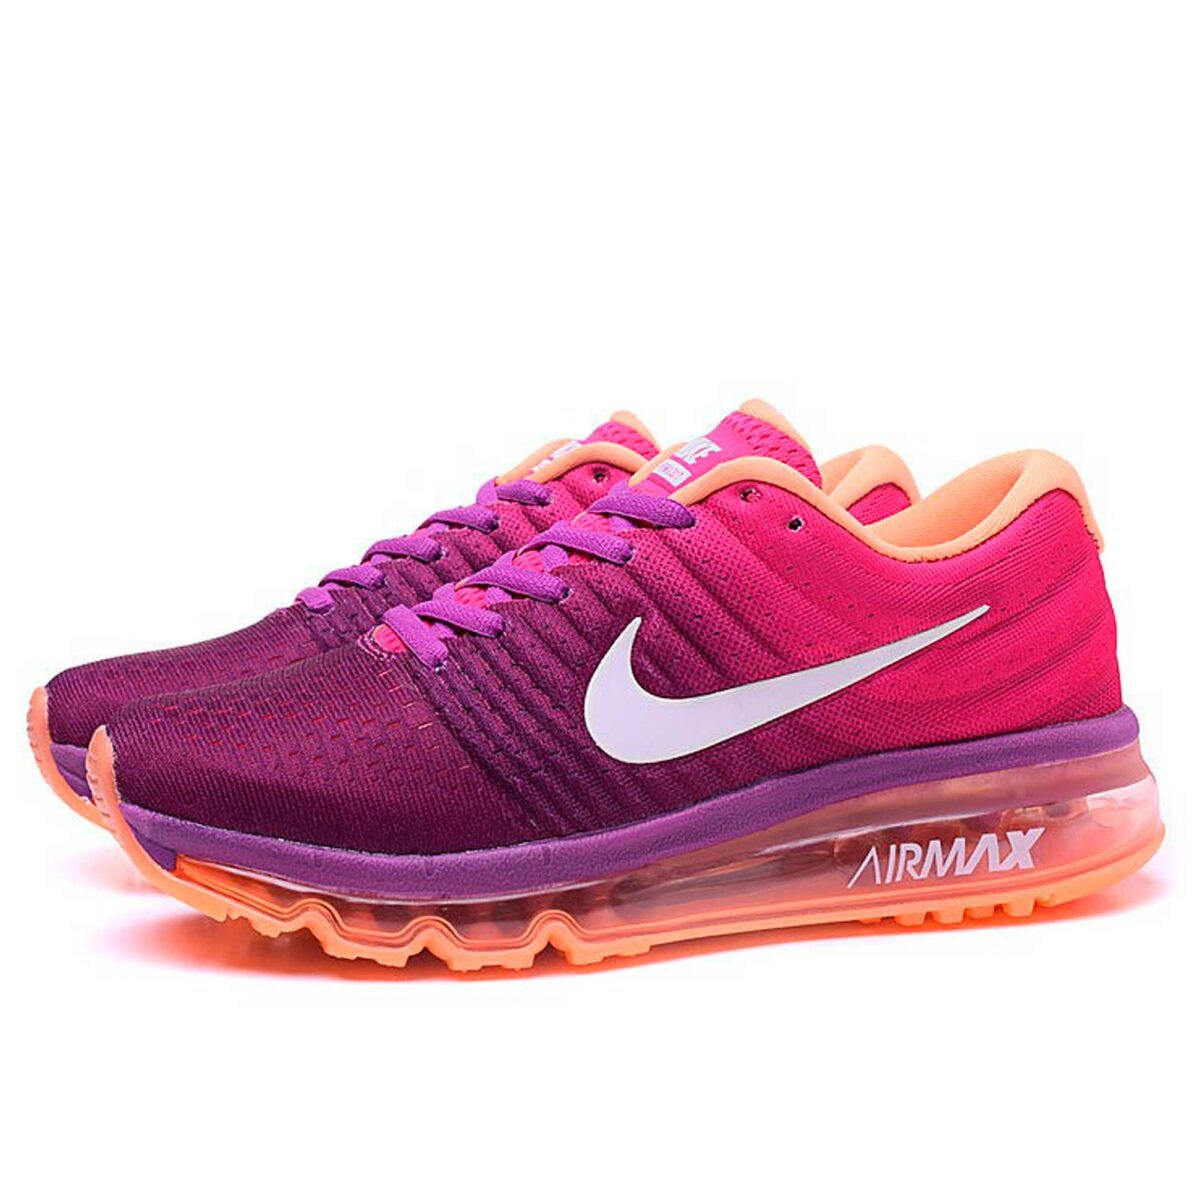 nike air max 2017 bright grape 849560-502 купить